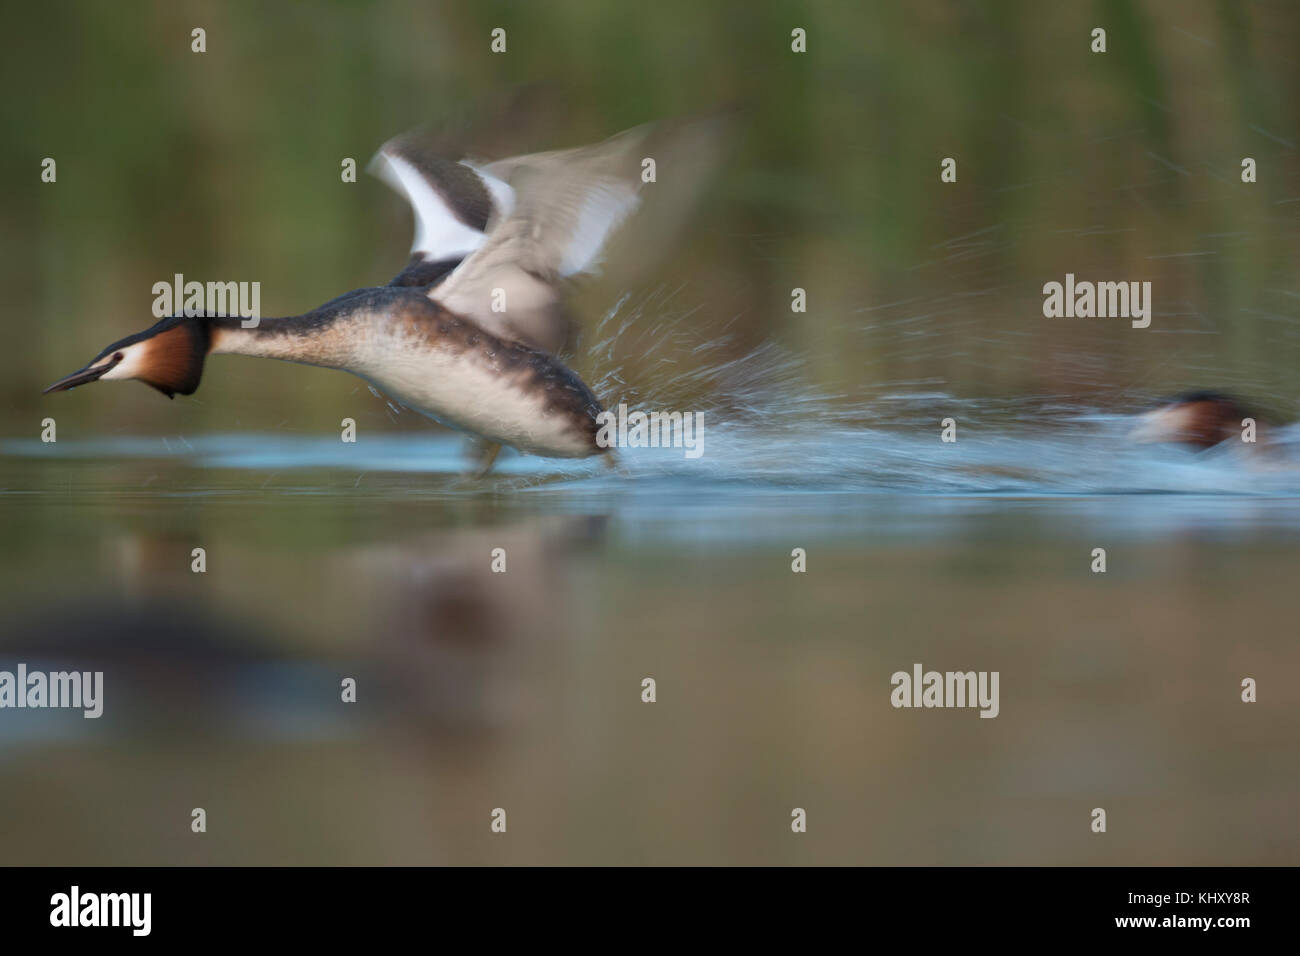 Great Crested Grebes ( Podiceps cristatus ) in fight, territorial behaviour, chasing a rival, running fast over - Stock Image